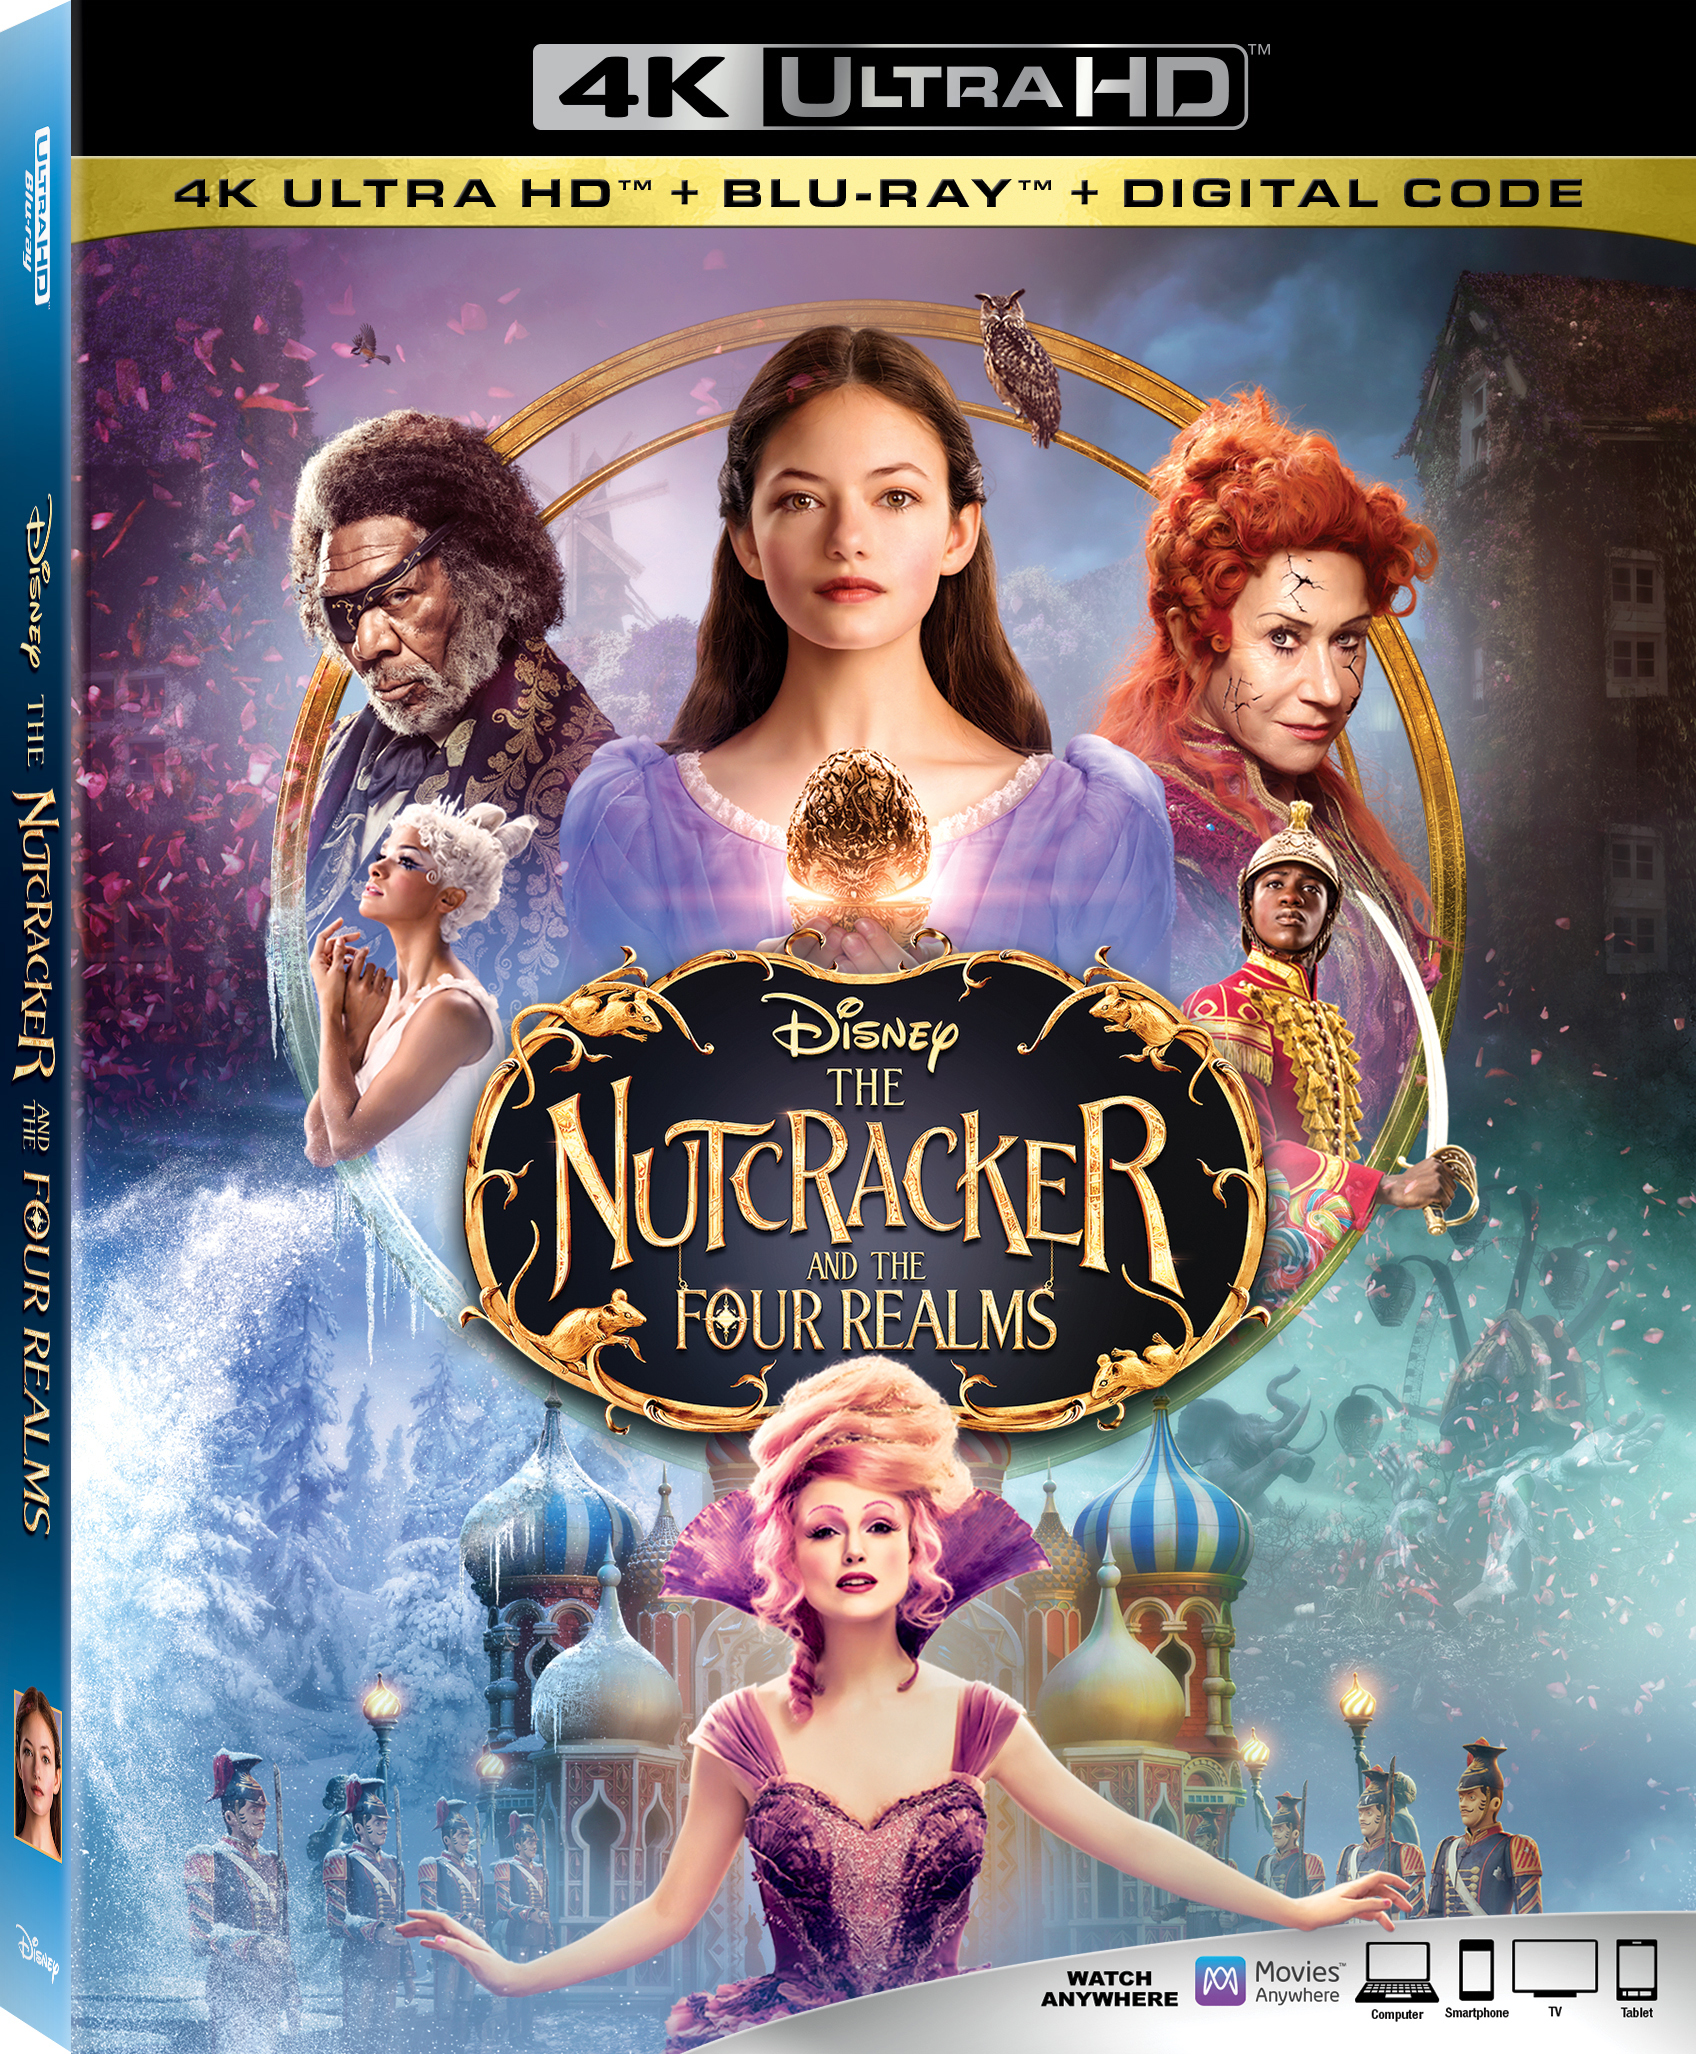 The Nutcracker and the Four Realms (2018) poster image